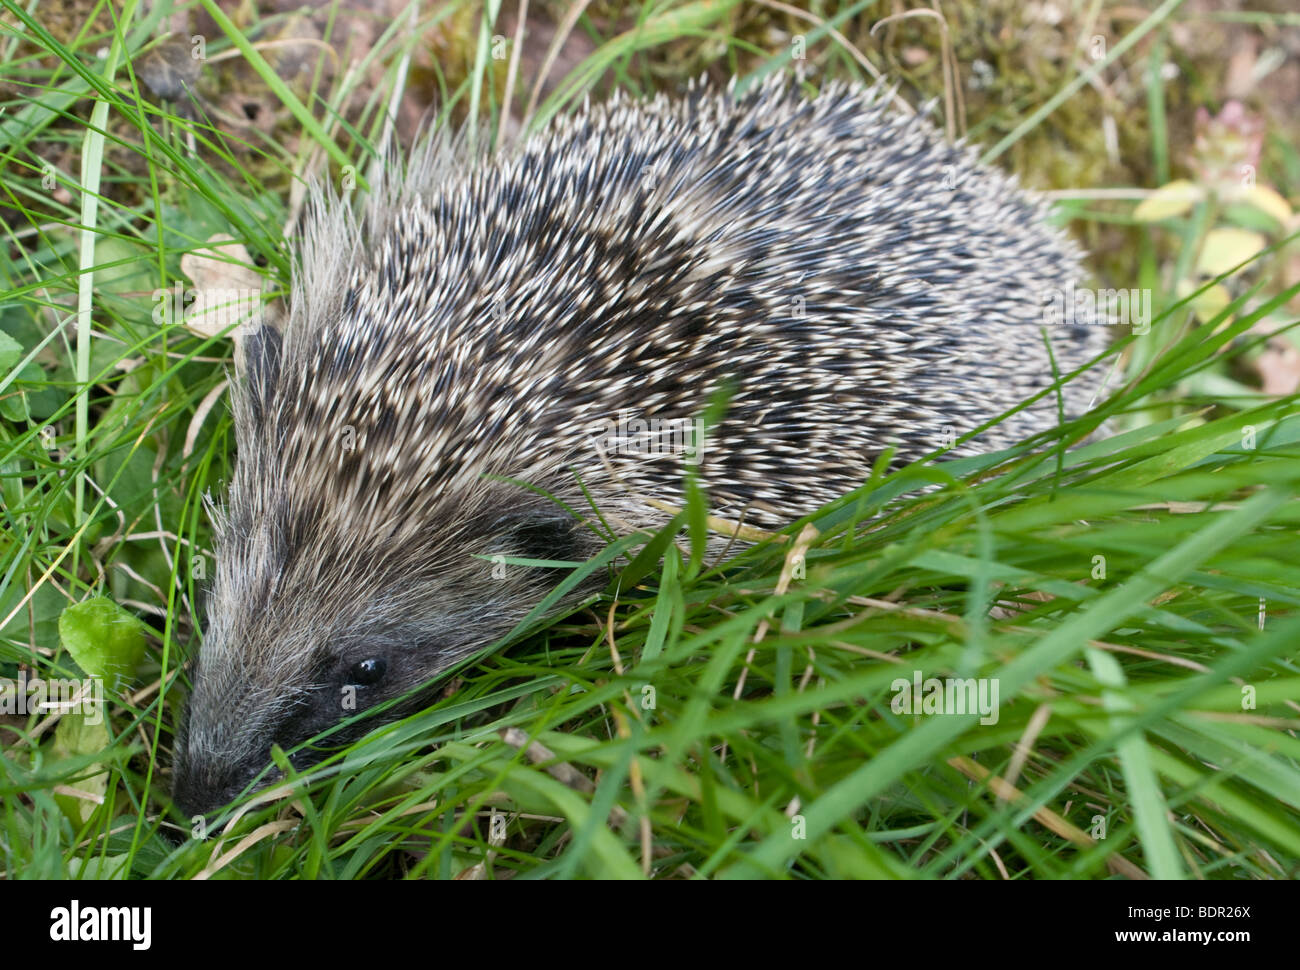 Baby hedgehog snuffling along in the long grass. - Stock Image